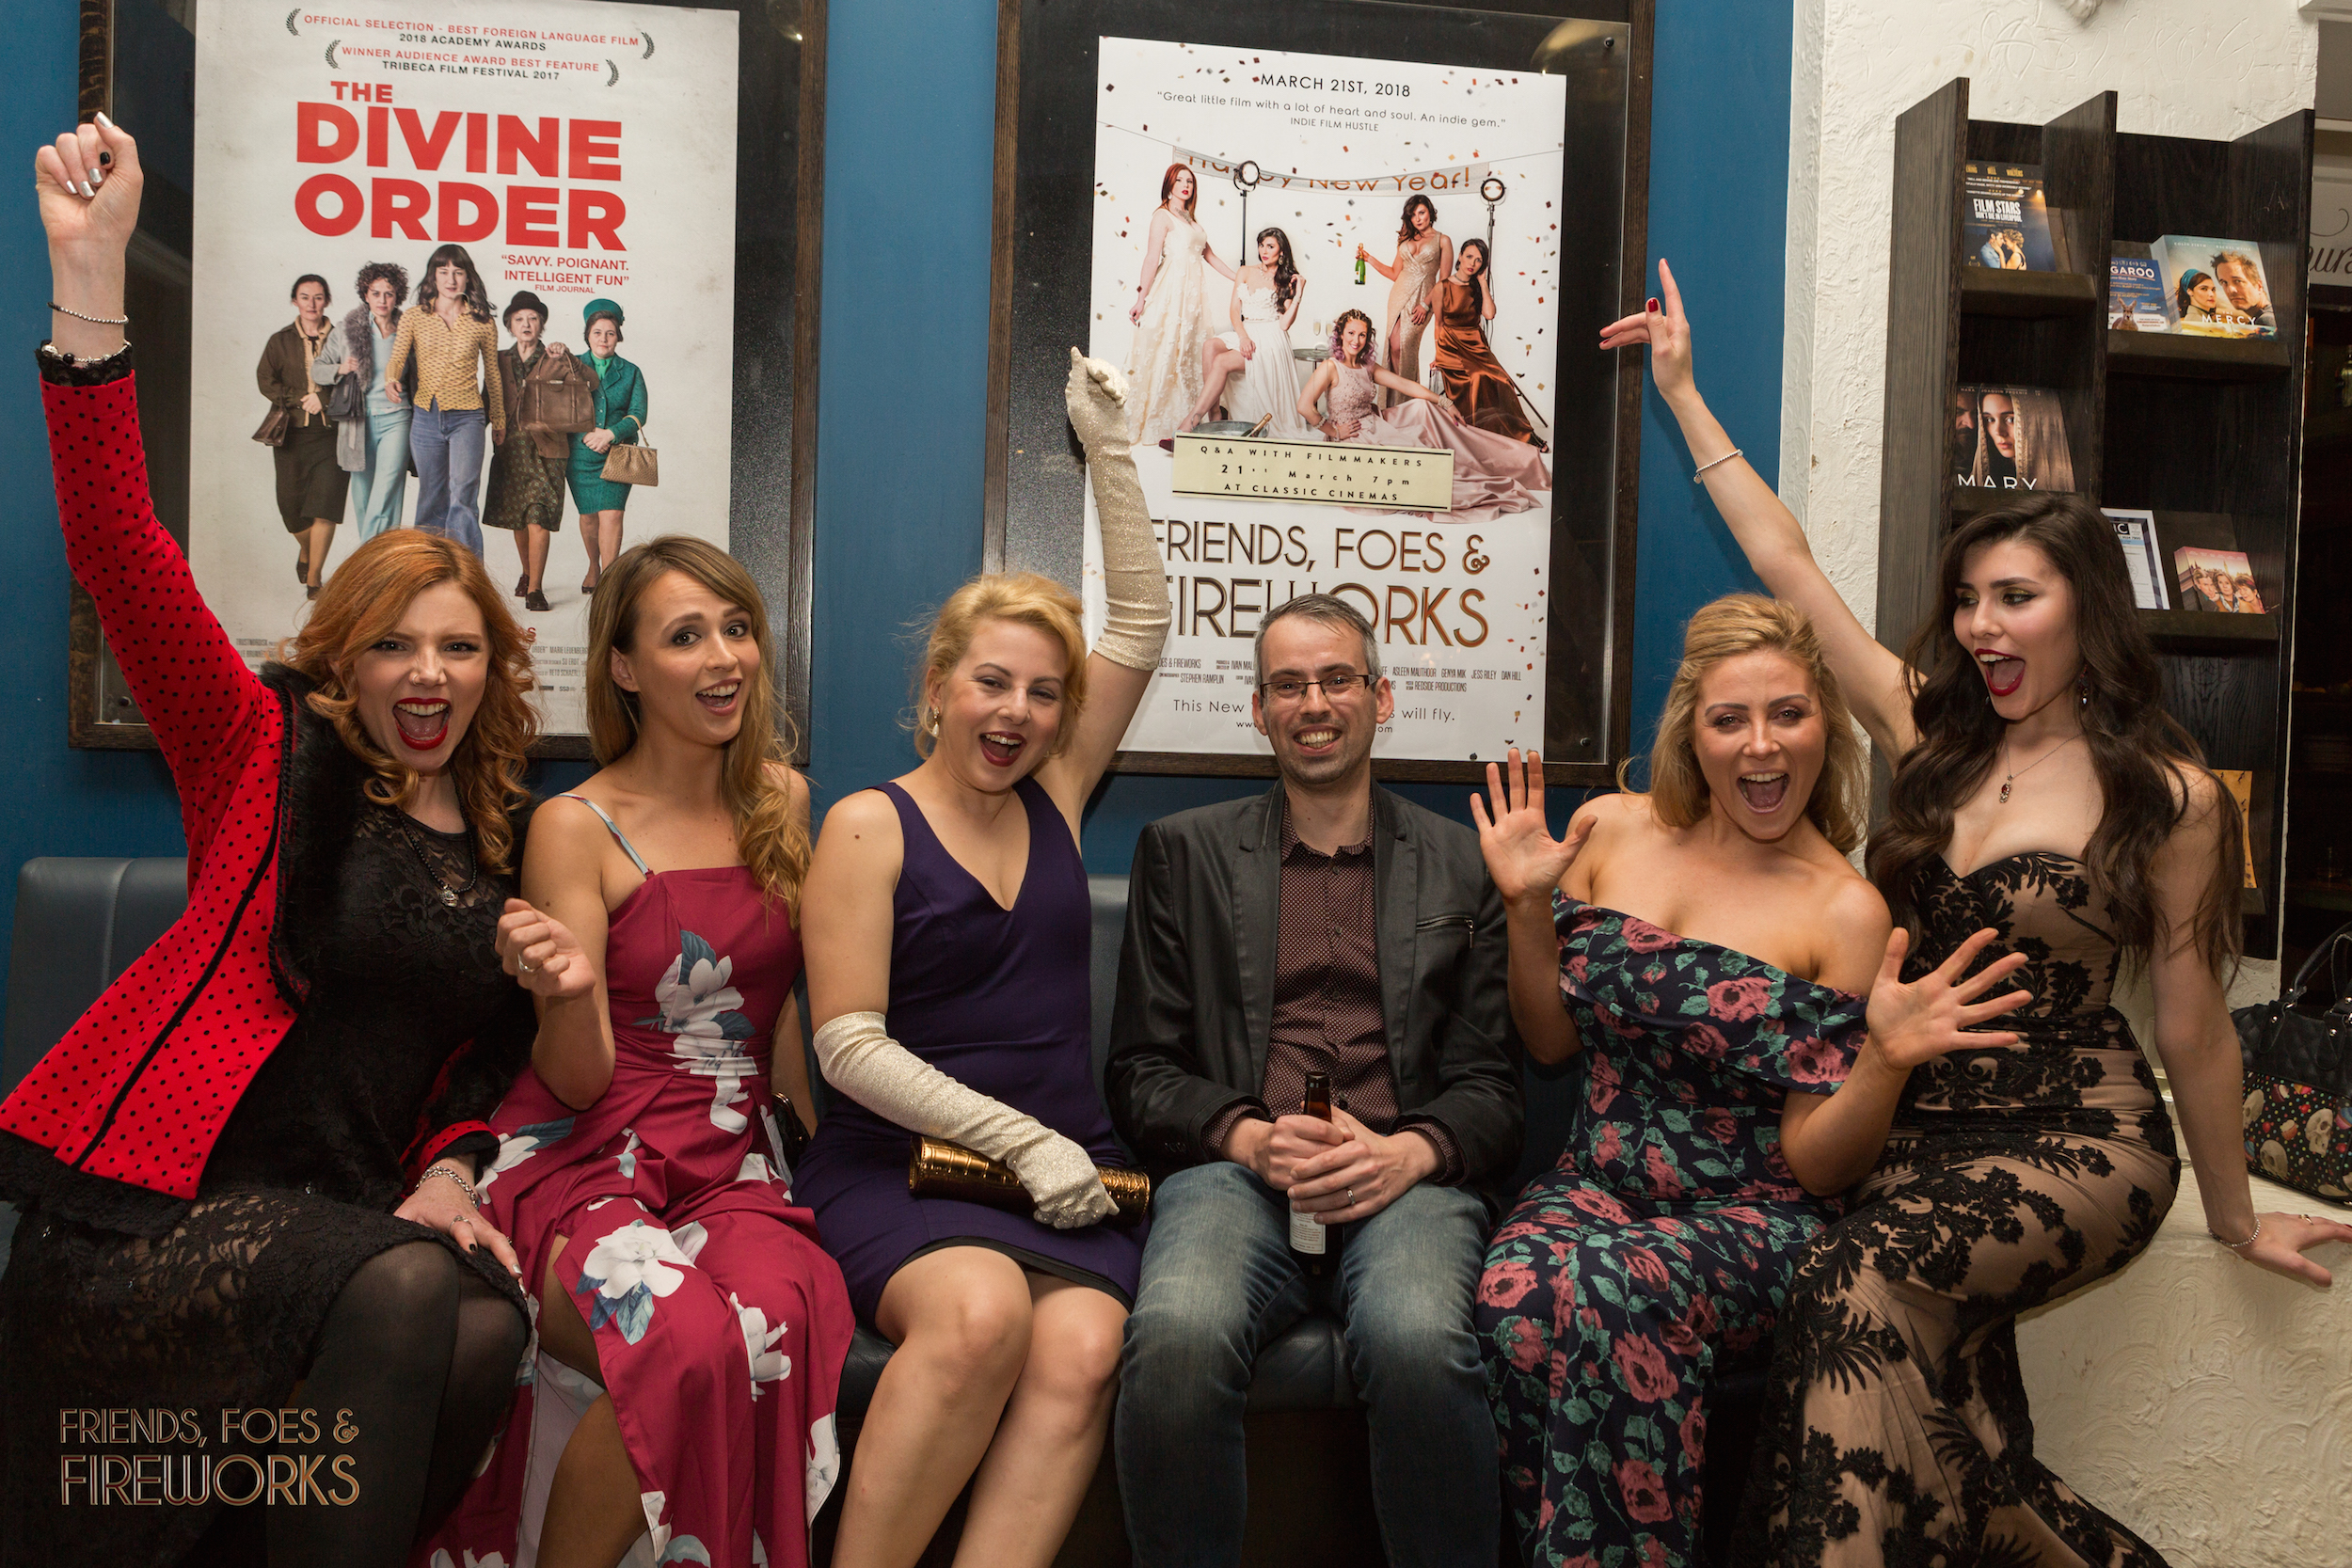 Friends, Foes & Fireworks cinema run kicked off in Elsternwick's The Classic Cinema with our cast